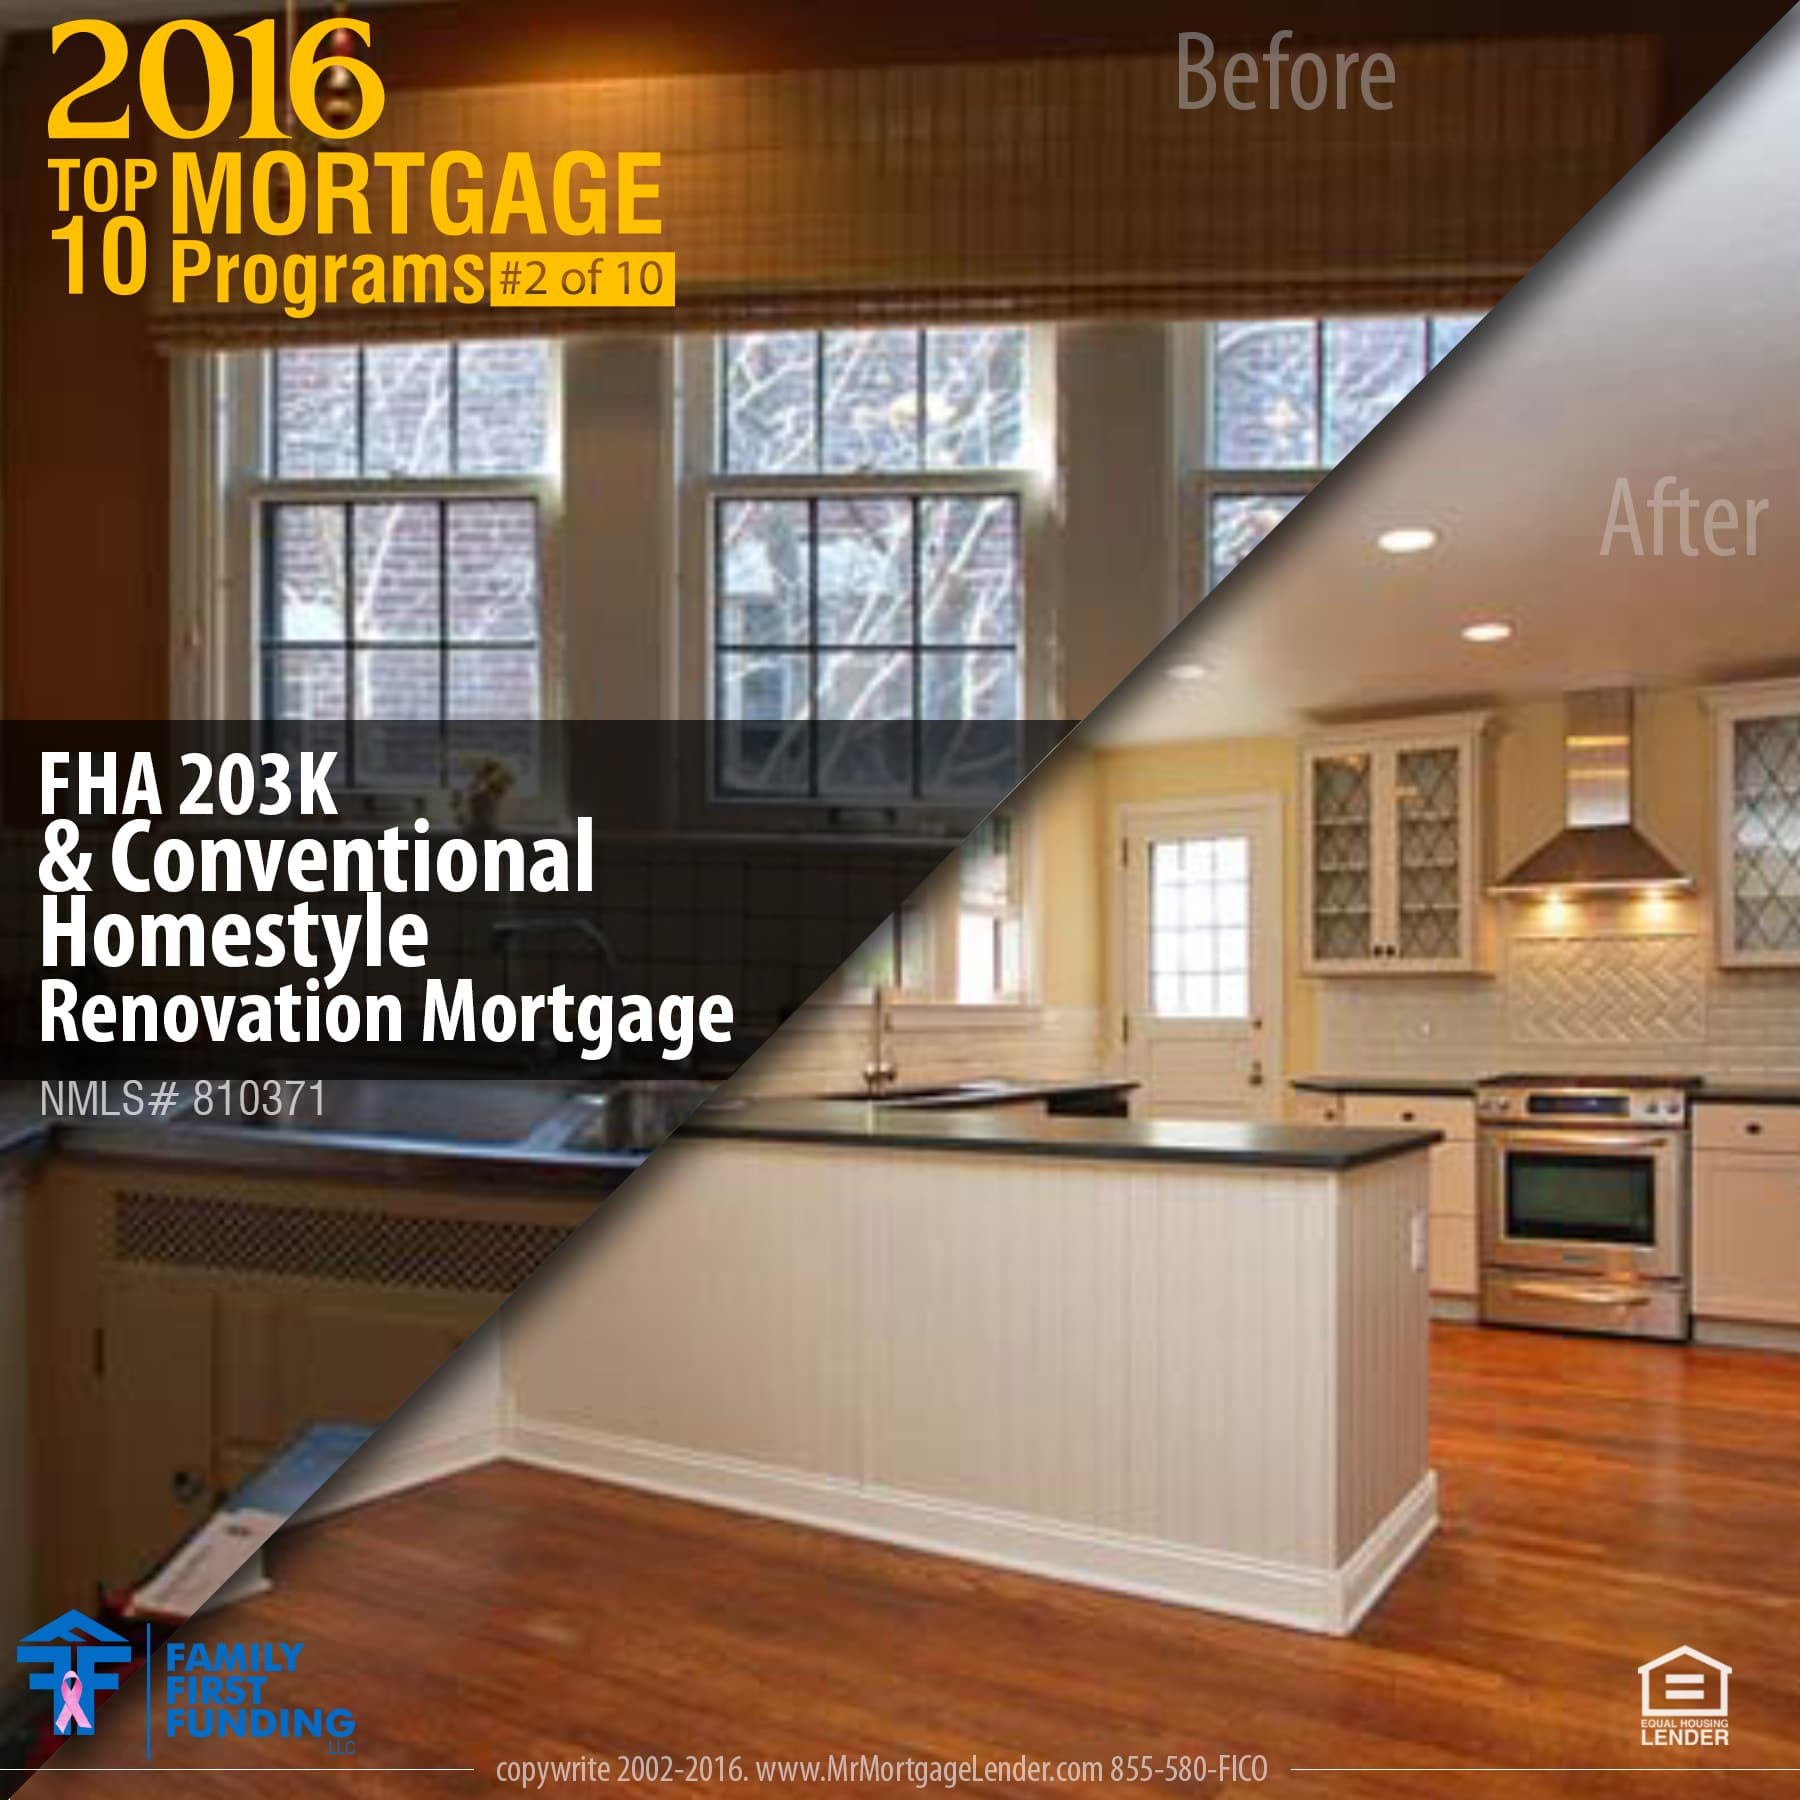 2. FHA 203K & Conventional Homestyle Renovation Mortgage -Design